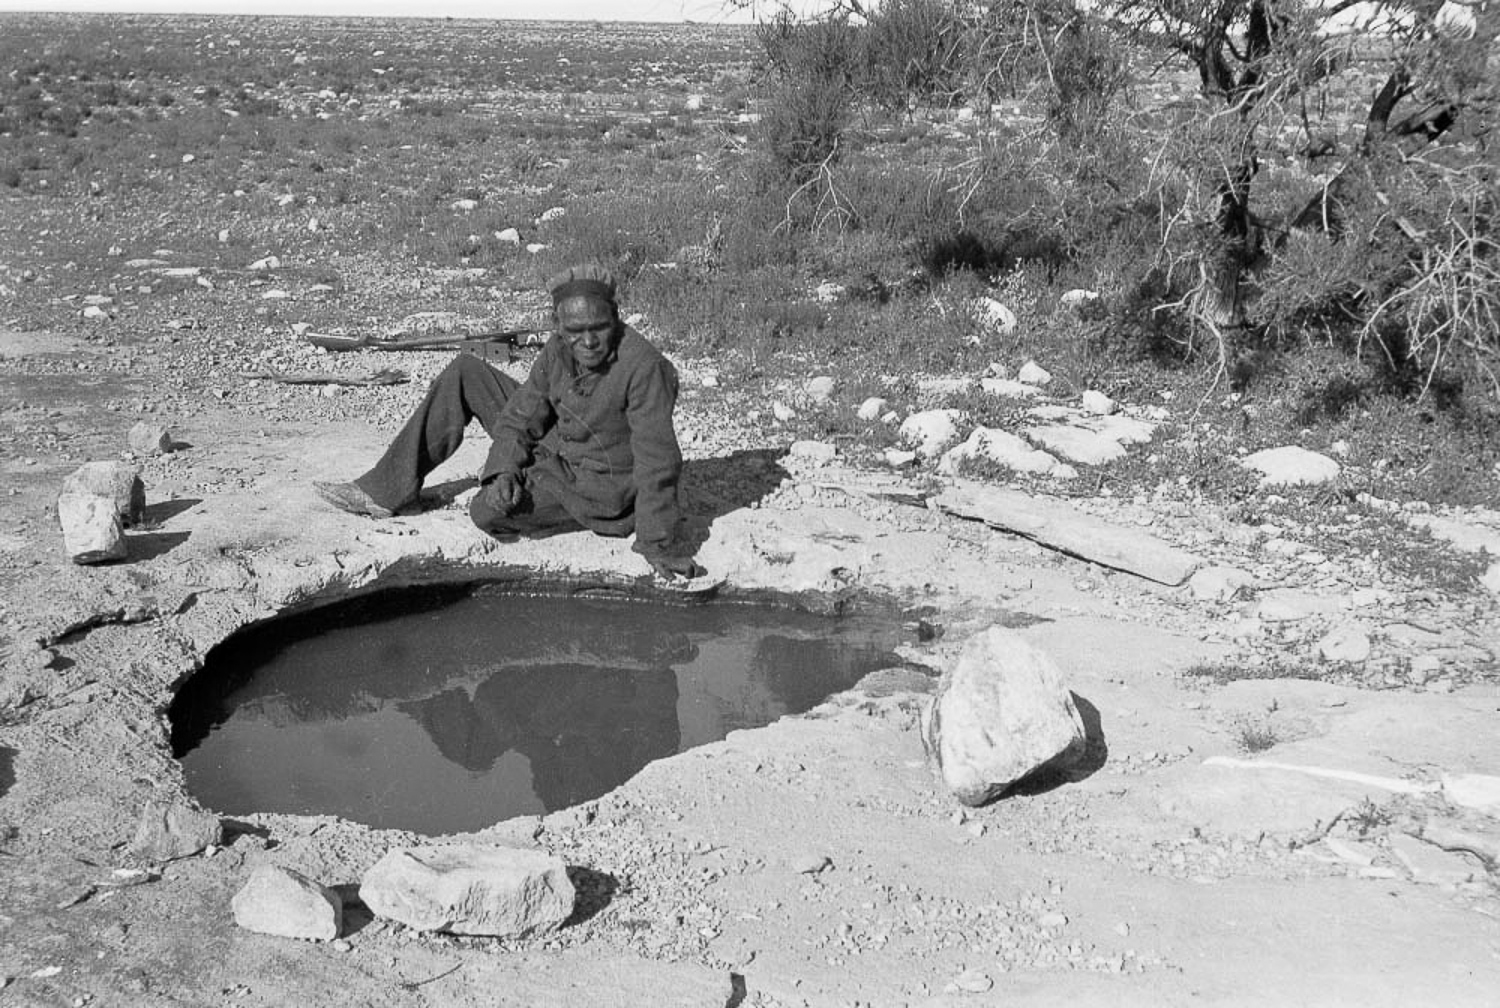 Tracker Jimmie Maadi sits next to the rockhole where Cundeelee mission was based. This water supply was known as Urpulurpulila by Anangu, which means 'tadpole' in Pitjantjatjarra language. It was by way of rock holes such as this, as well as other sources of water, that Anangu could survive in the harsh desert climate.